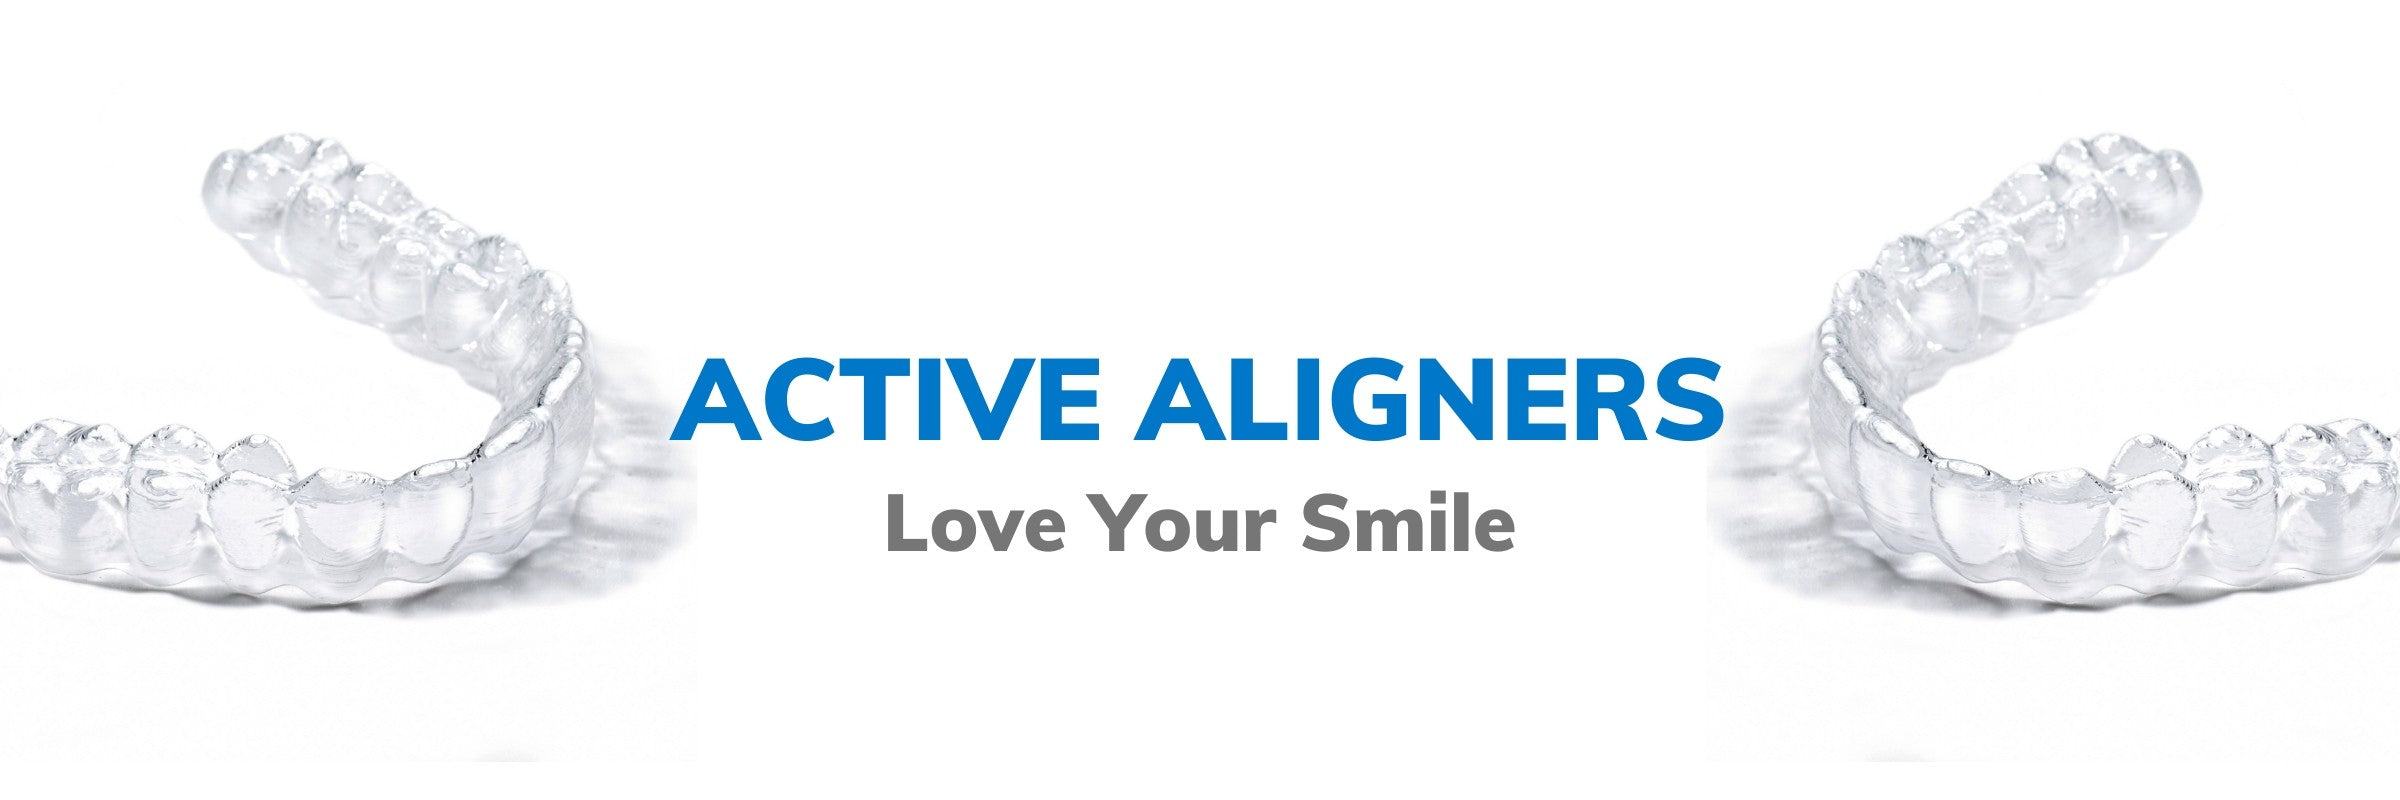 Active Aligners for straight teeth great reviews on clear aligners and clear braces, good results with active aligners